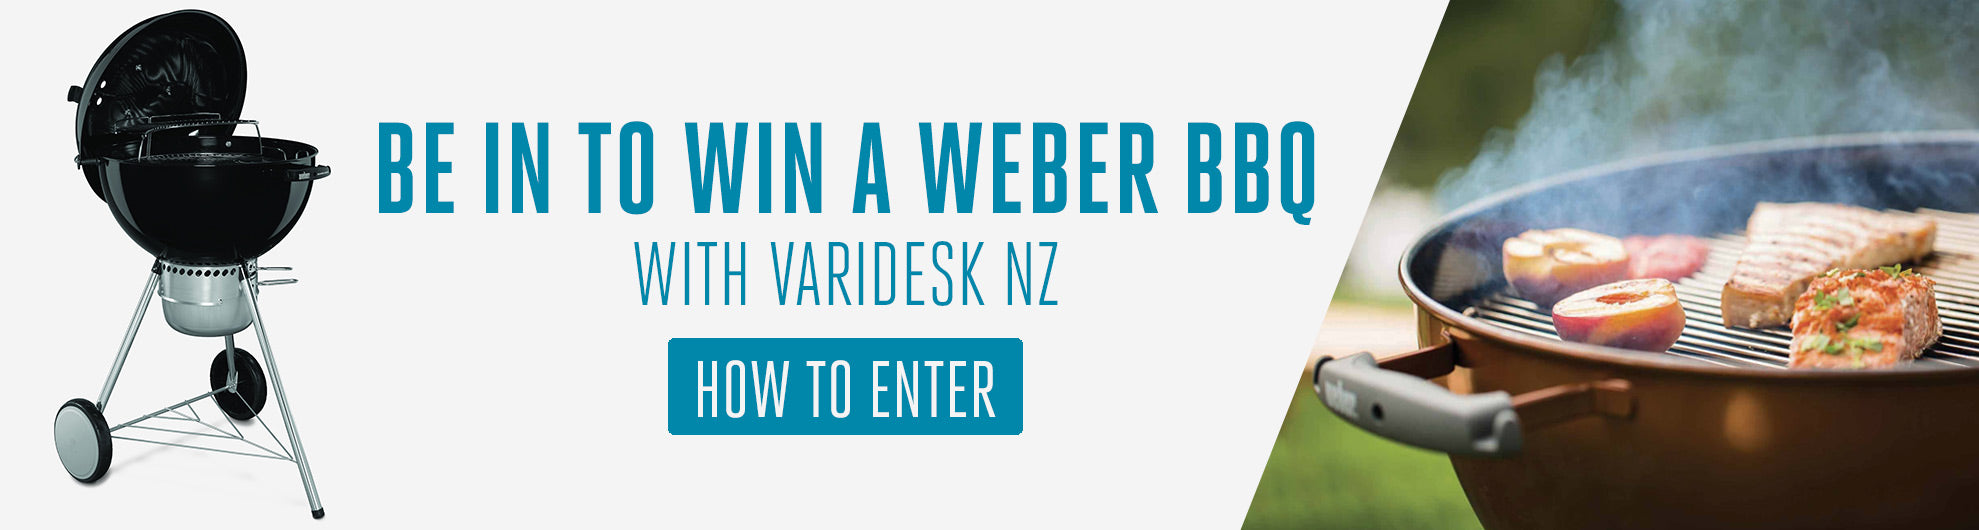 WIN A WEBER BBQ WITH VARIDESK